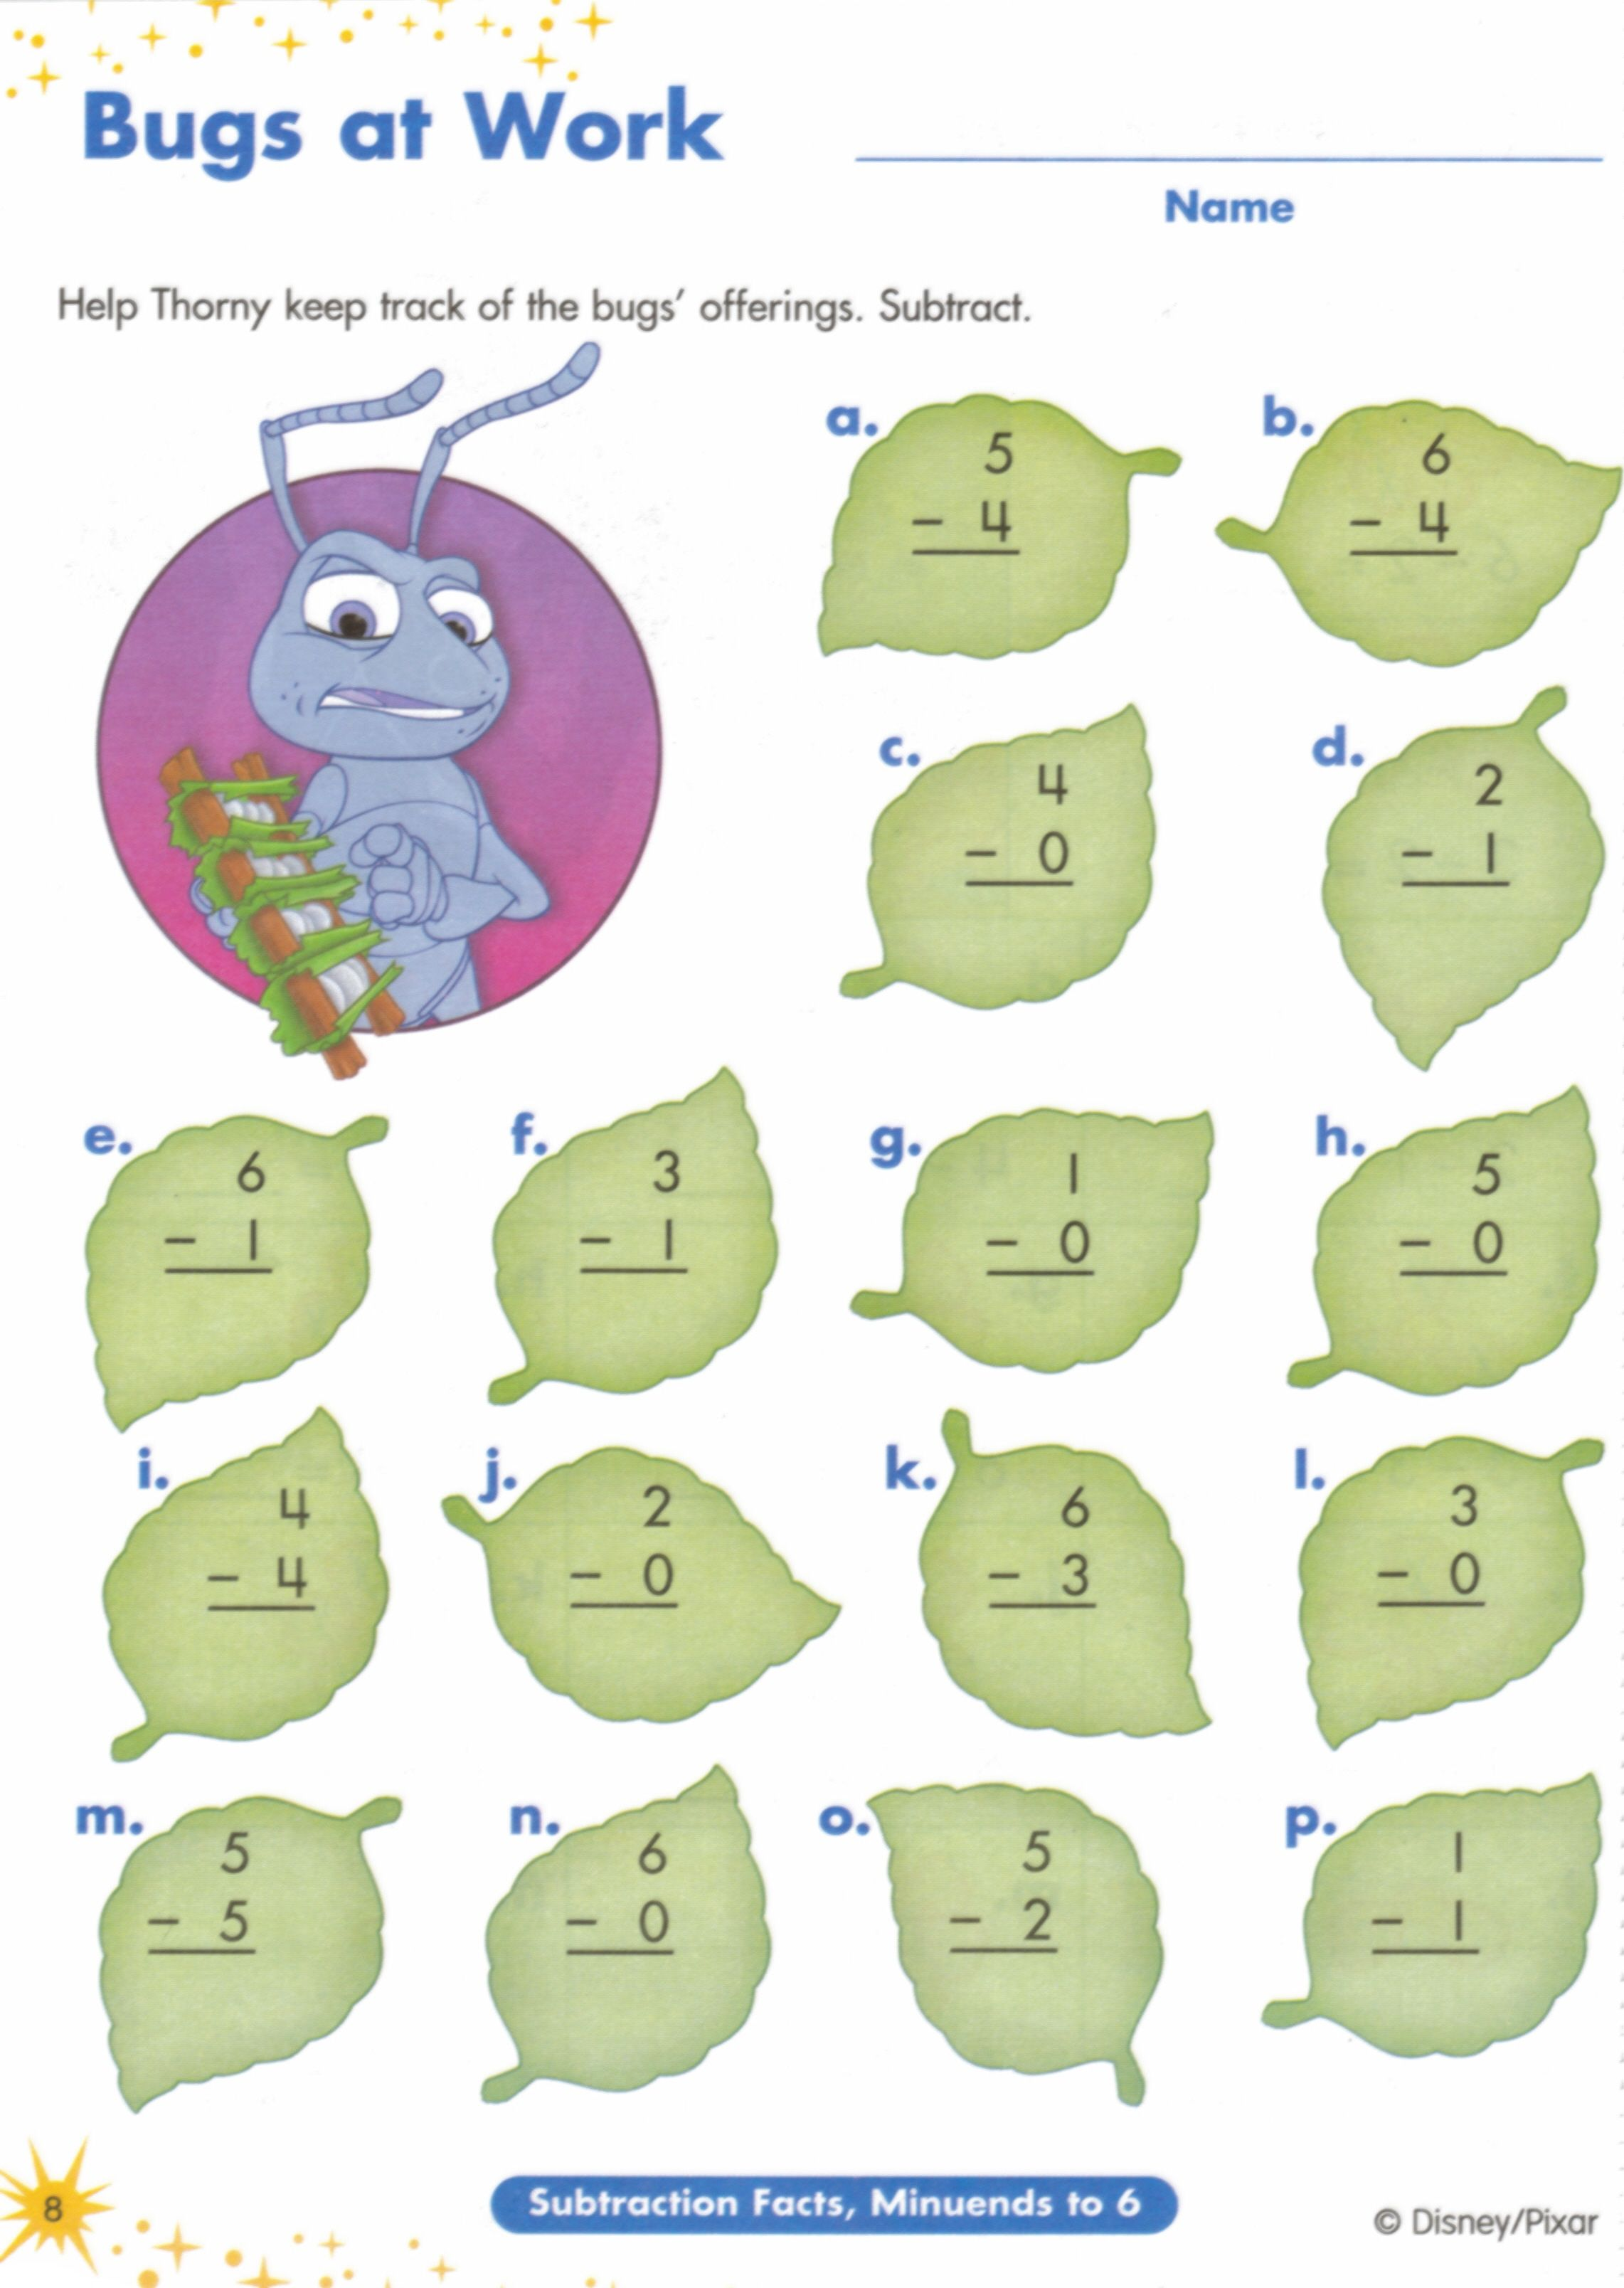 Proatmealus  Prepossessing  Images About Worksheets On Pinterest  Fun Facts For Kids  With Exciting  Images About Worksheets On Pinterest  Fun Facts For Kids Earth Day Worksheets And Jungles With Cute In Music What Does Allegro Mean Math Worksheet Also Function Tables Worksheets In Addition Algebra  Slope Intercept Form Worksheet And Silent E Worksheet As Well As Printable Math Worksheets For Kindergarten Additionally Number Handwriting Worksheets From Pinterestcom With Proatmealus  Exciting  Images About Worksheets On Pinterest  Fun Facts For Kids  With Cute  Images About Worksheets On Pinterest  Fun Facts For Kids Earth Day Worksheets And Jungles And Prepossessing In Music What Does Allegro Mean Math Worksheet Also Function Tables Worksheets In Addition Algebra  Slope Intercept Form Worksheet From Pinterestcom